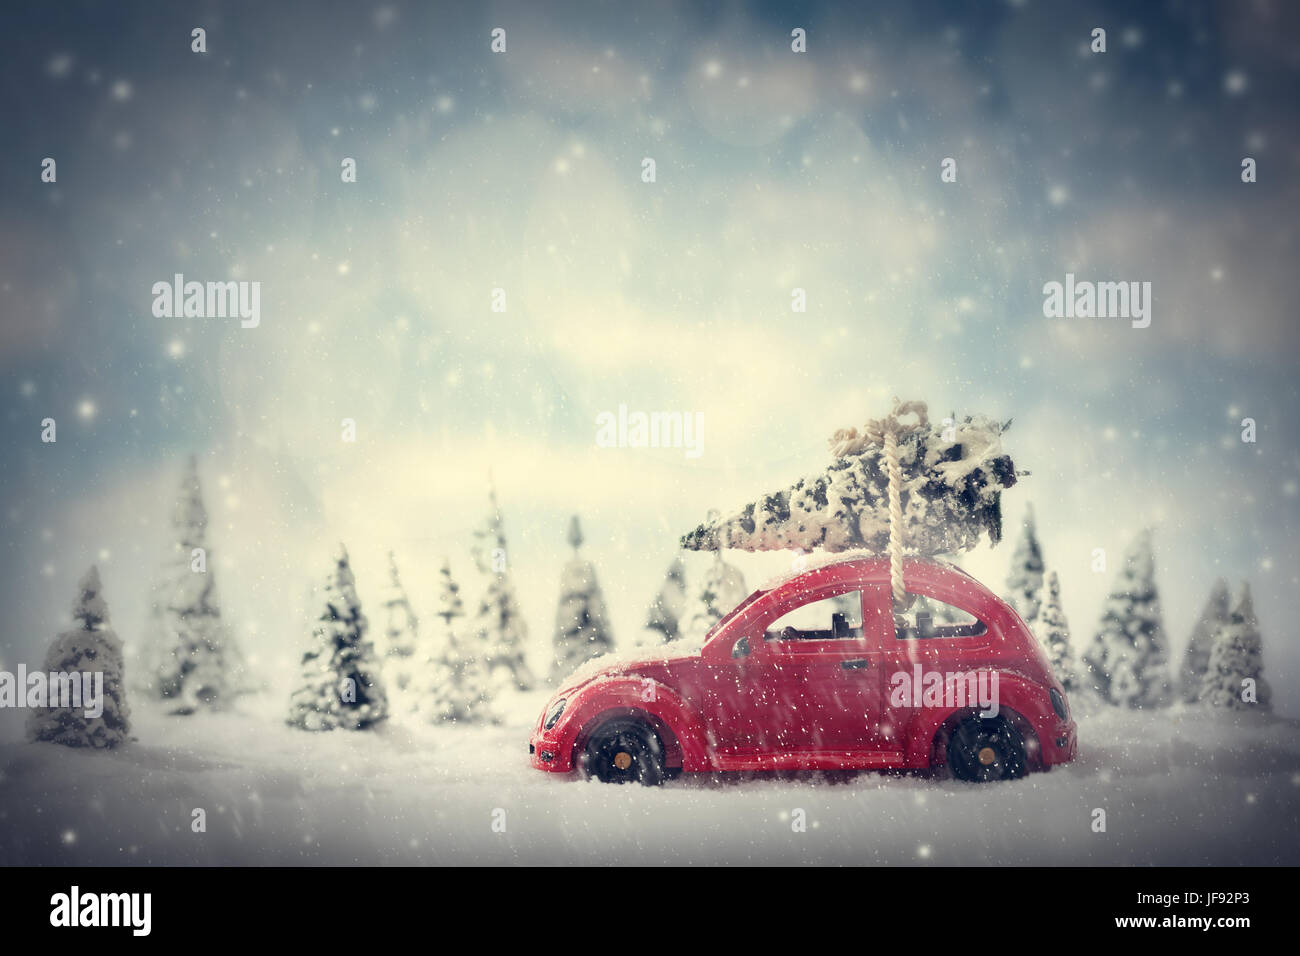 Retro toy car carrying tiny Christmas tree. Fairytale, miniature scenery with snow and forest. Stock Photo